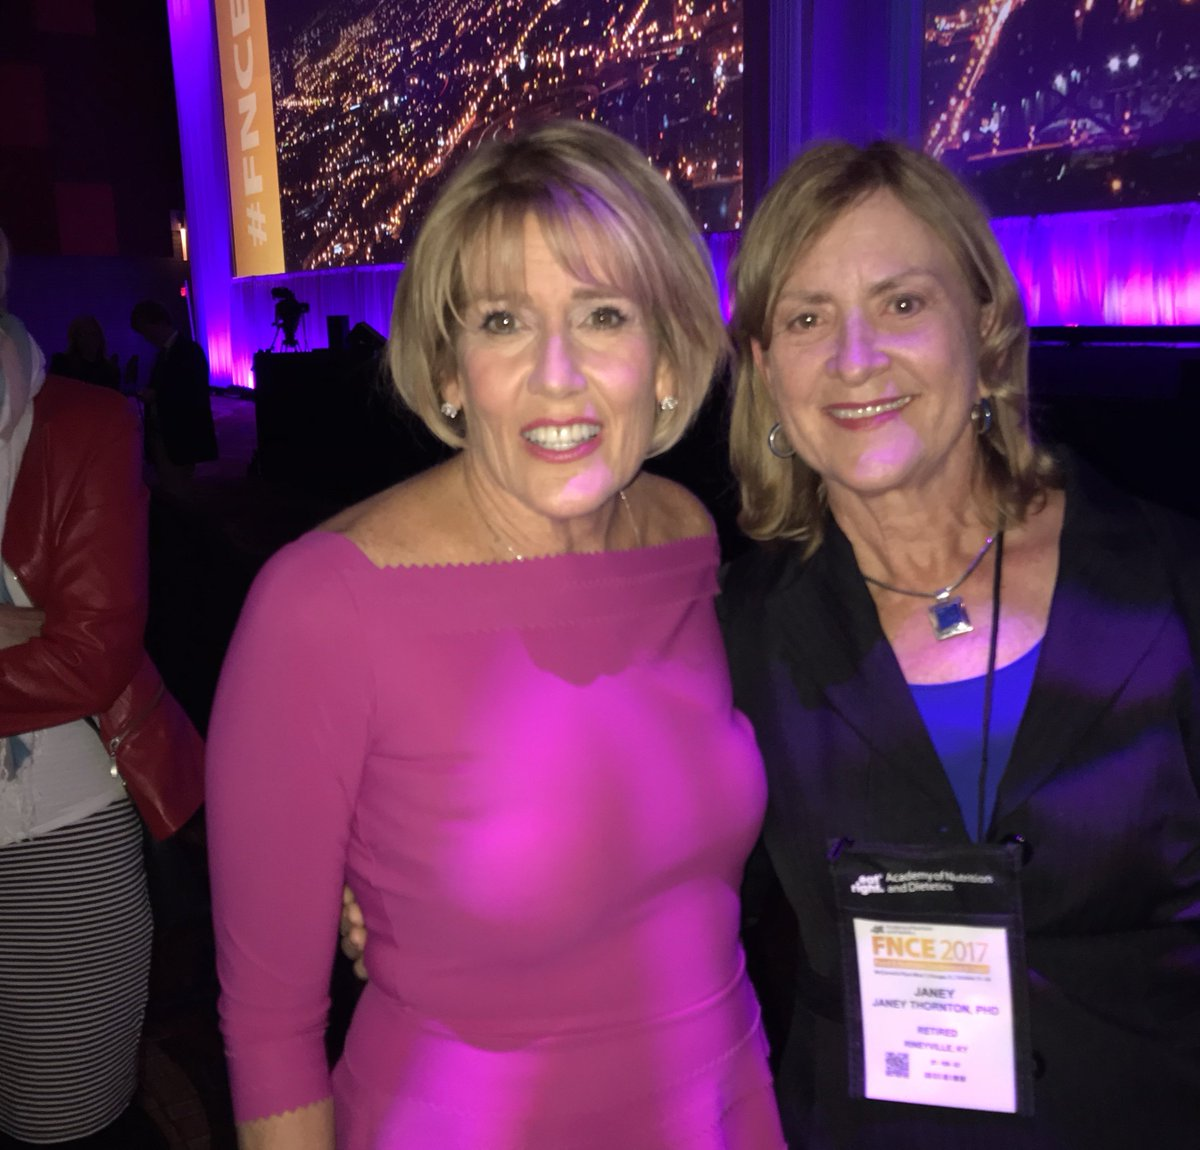 Hey #FNCE 2017! What a terrific #Day1! Hope your #Day2 will be filled with #knowledge #food and #friends like @janey_thornton @eatrightPRO<br>http://pic.twitter.com/gYFNZpwBGp